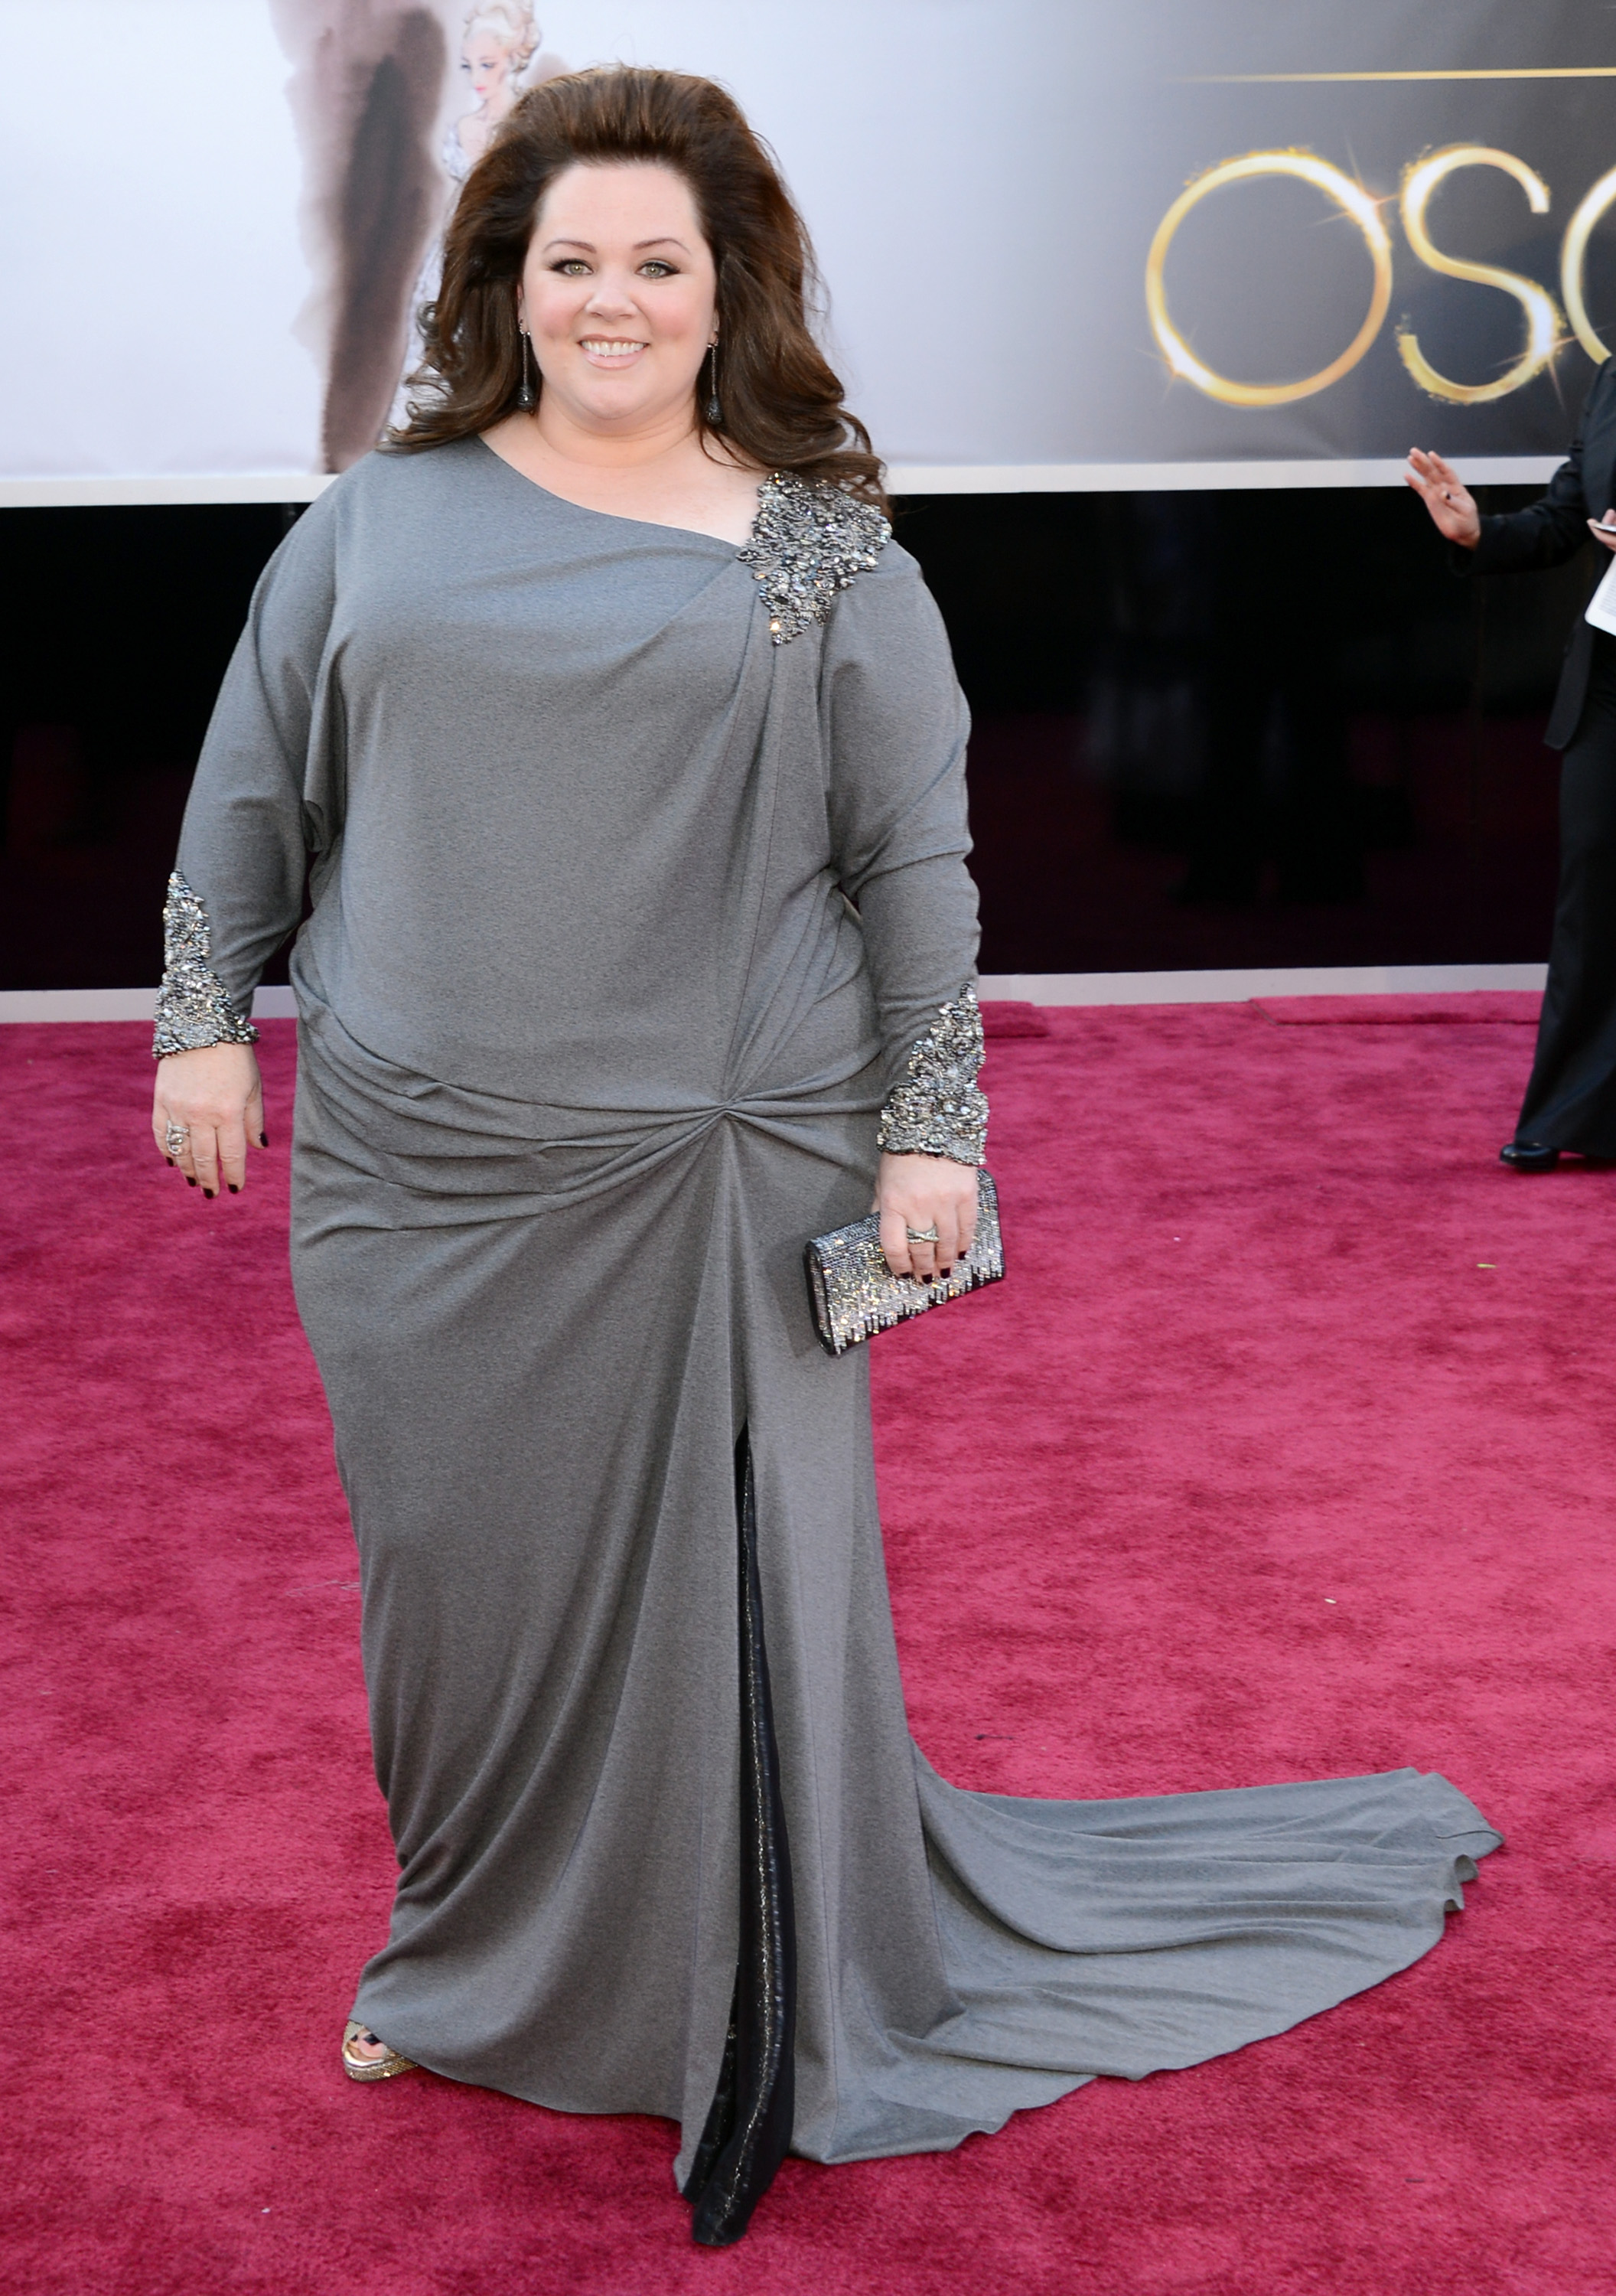 Melissa McCarthy on the red carpet at the Oscars 2013.